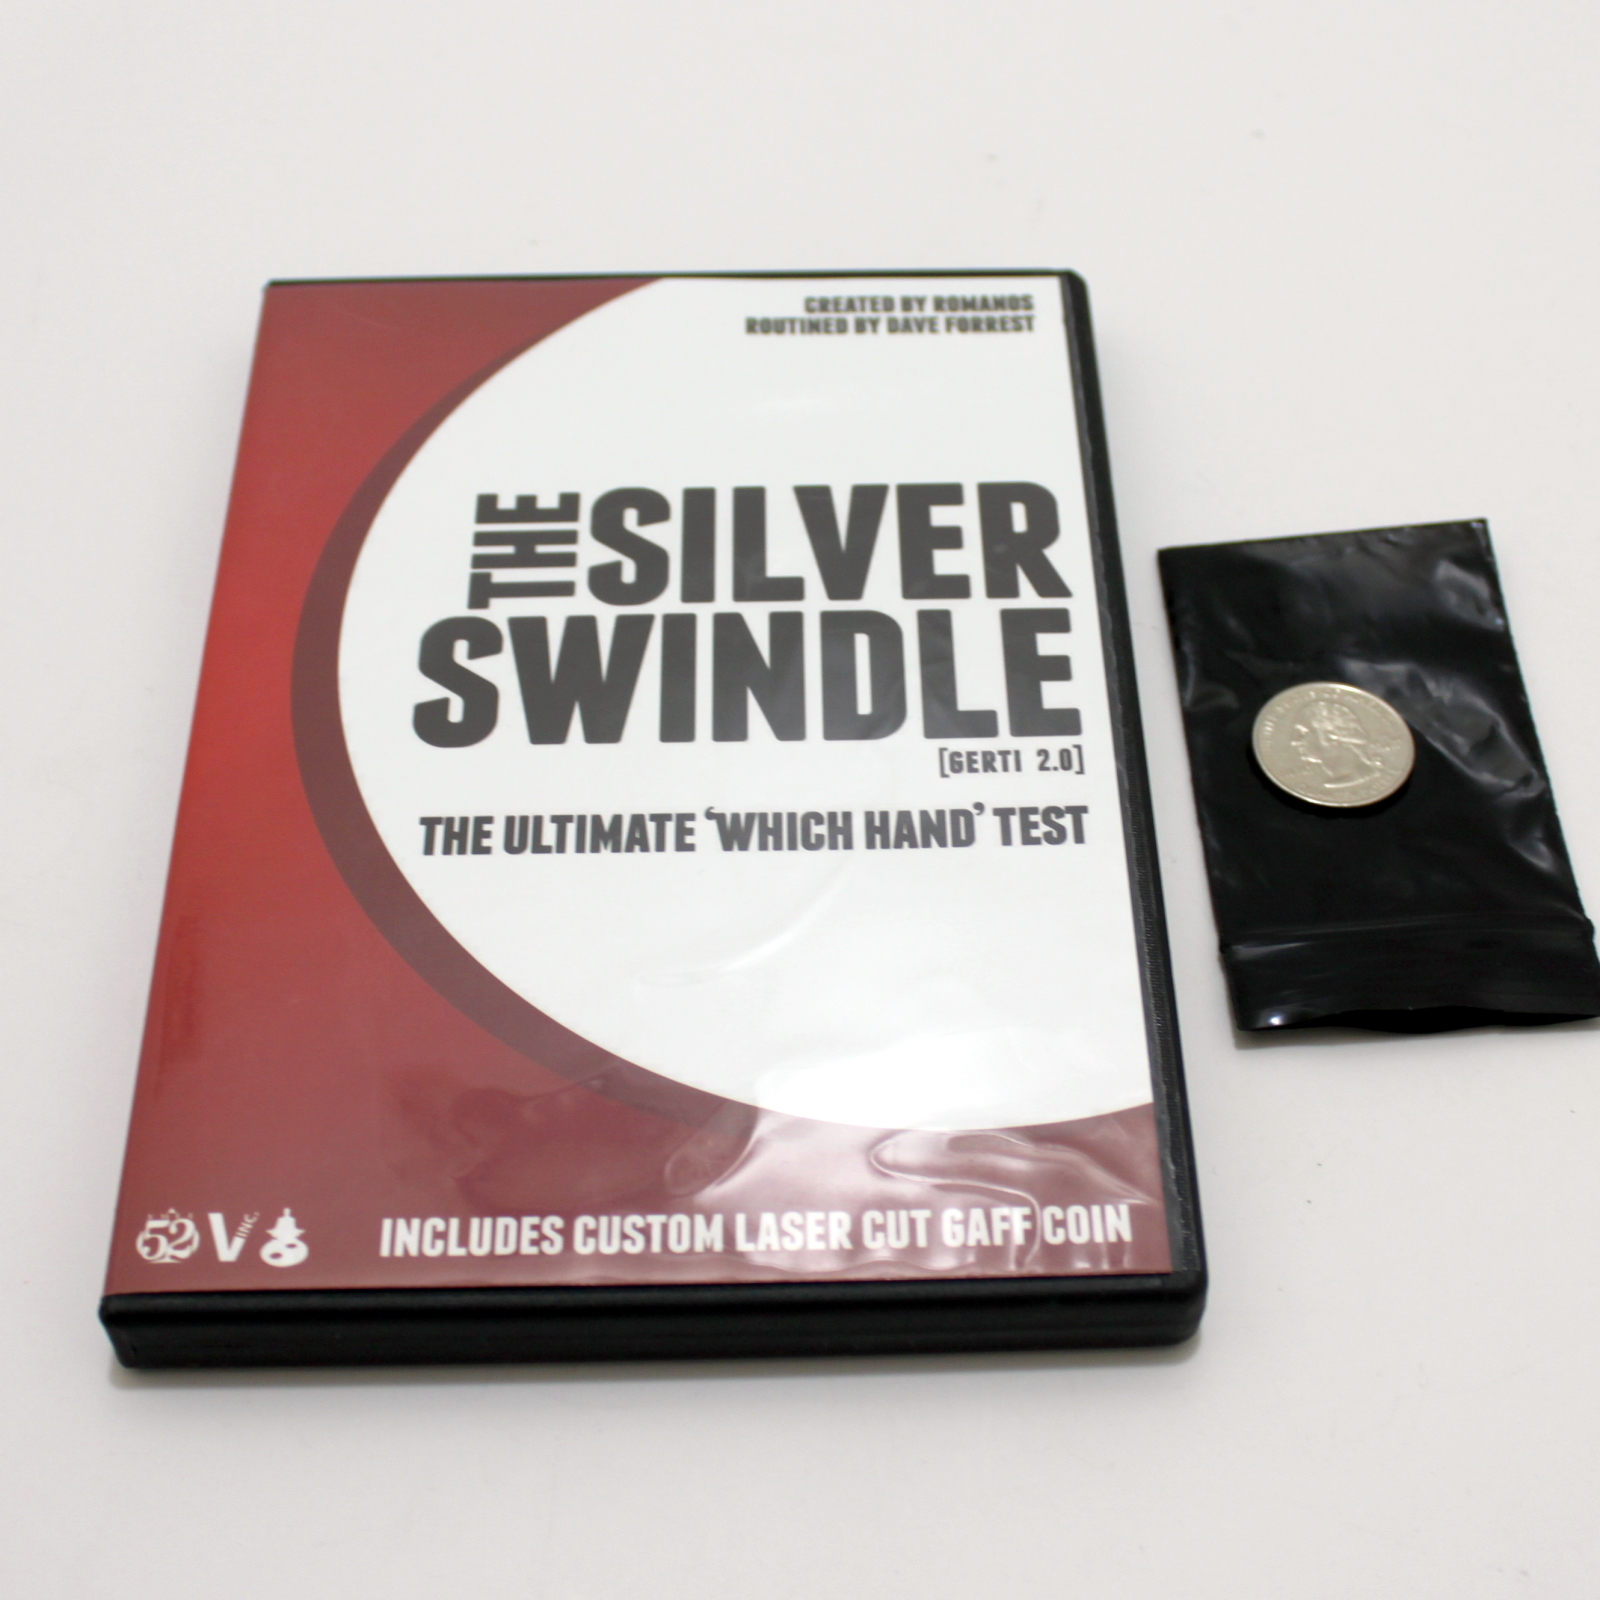 Silver Swindle (US Quarter) by Dave Forrest, Romanos